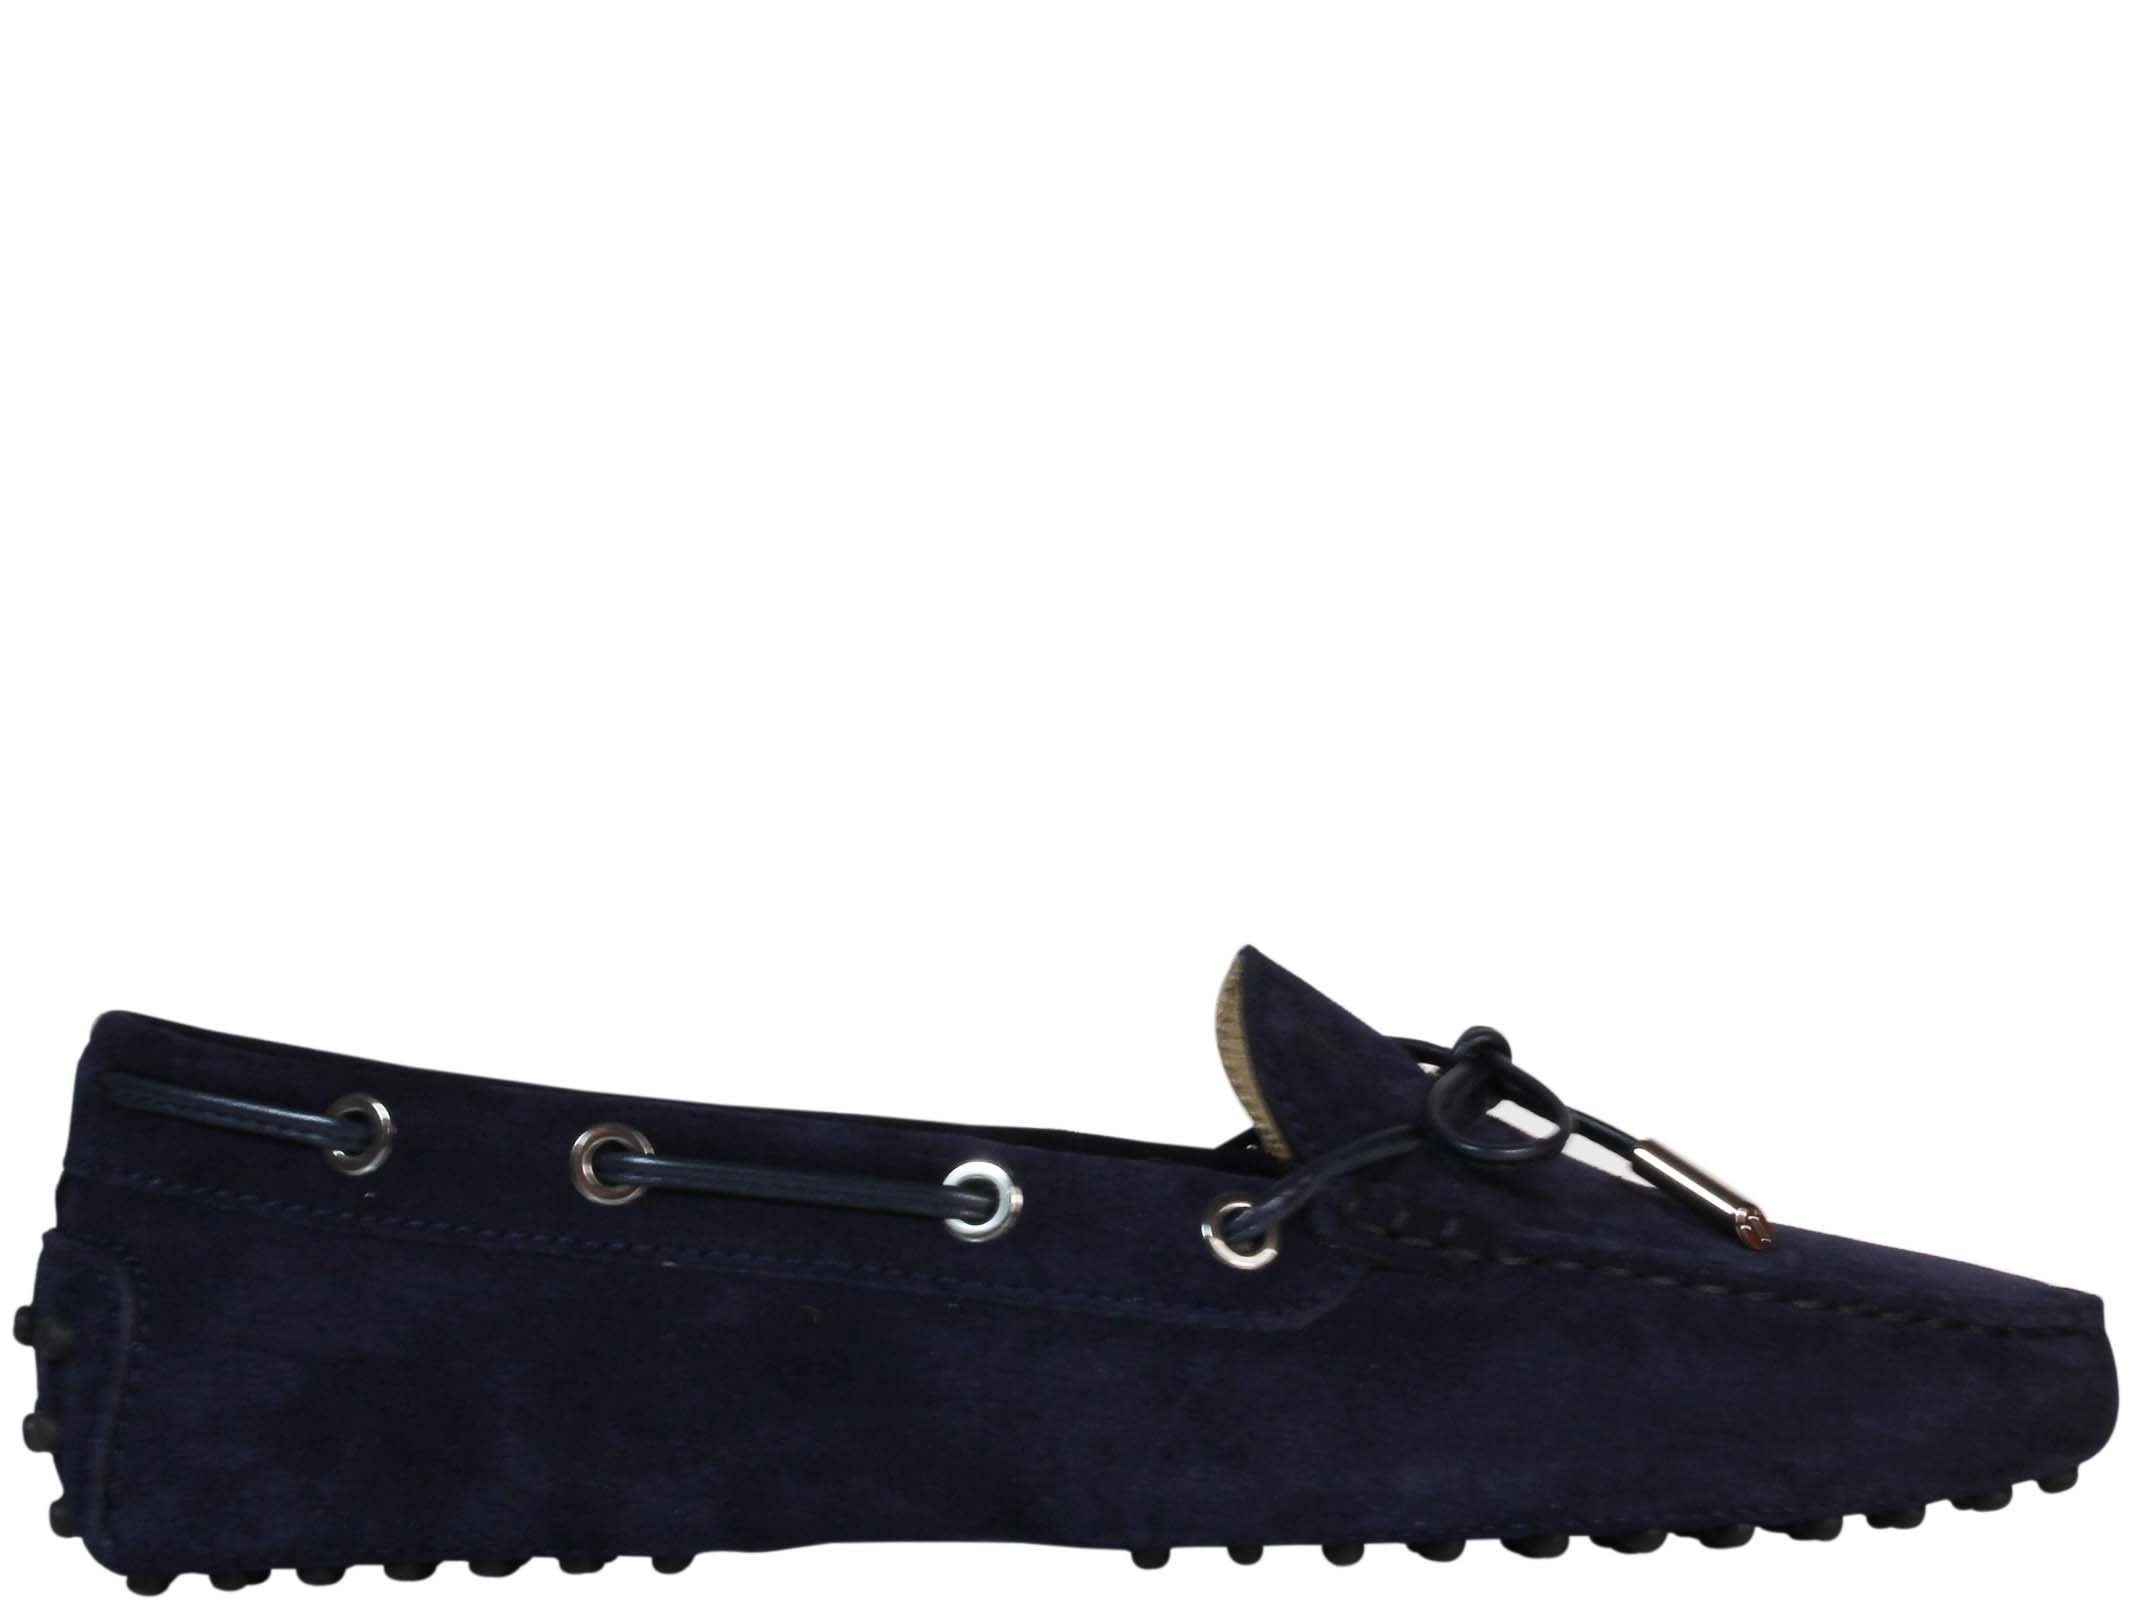 Tods Dark Blue Gommini Driving Shoes